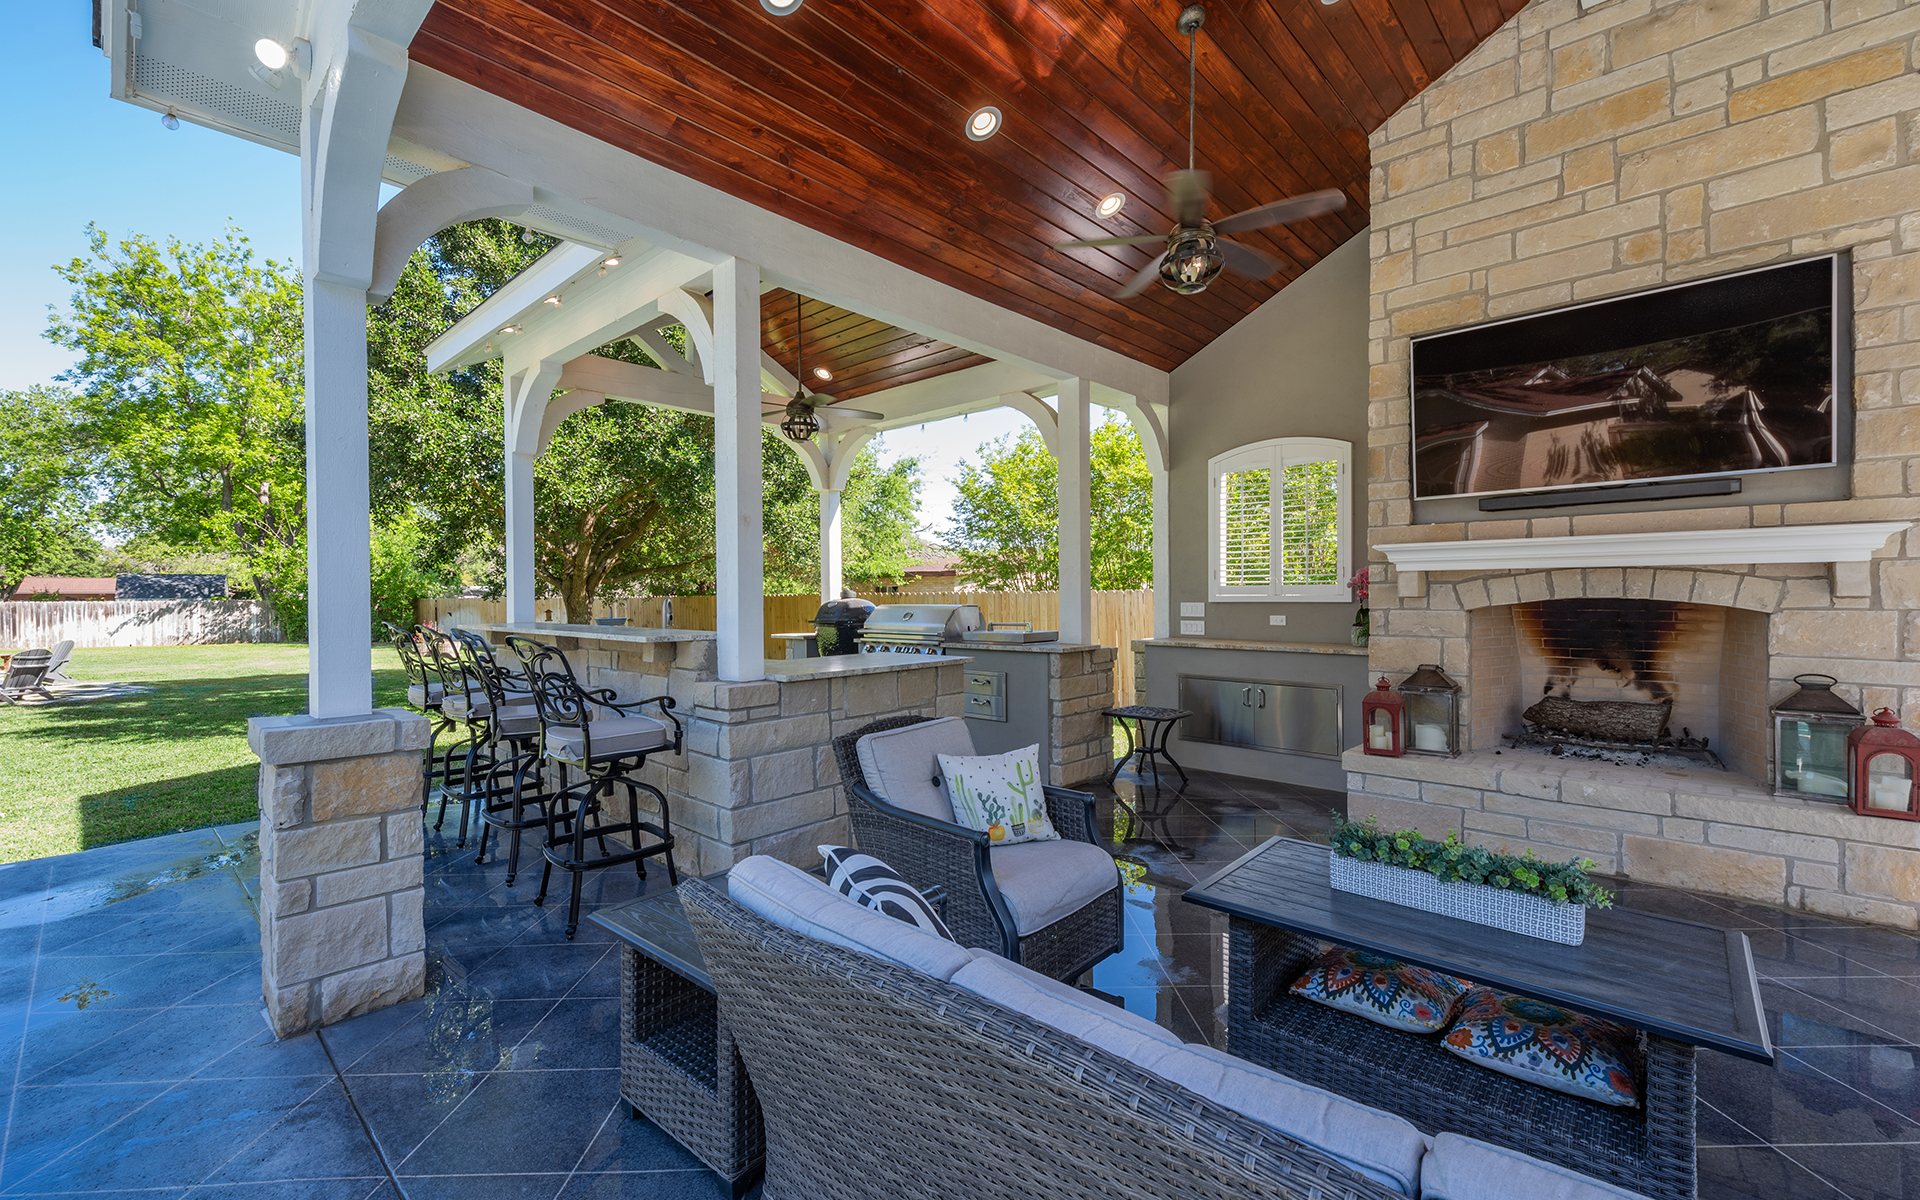 Pool House - Covered Area